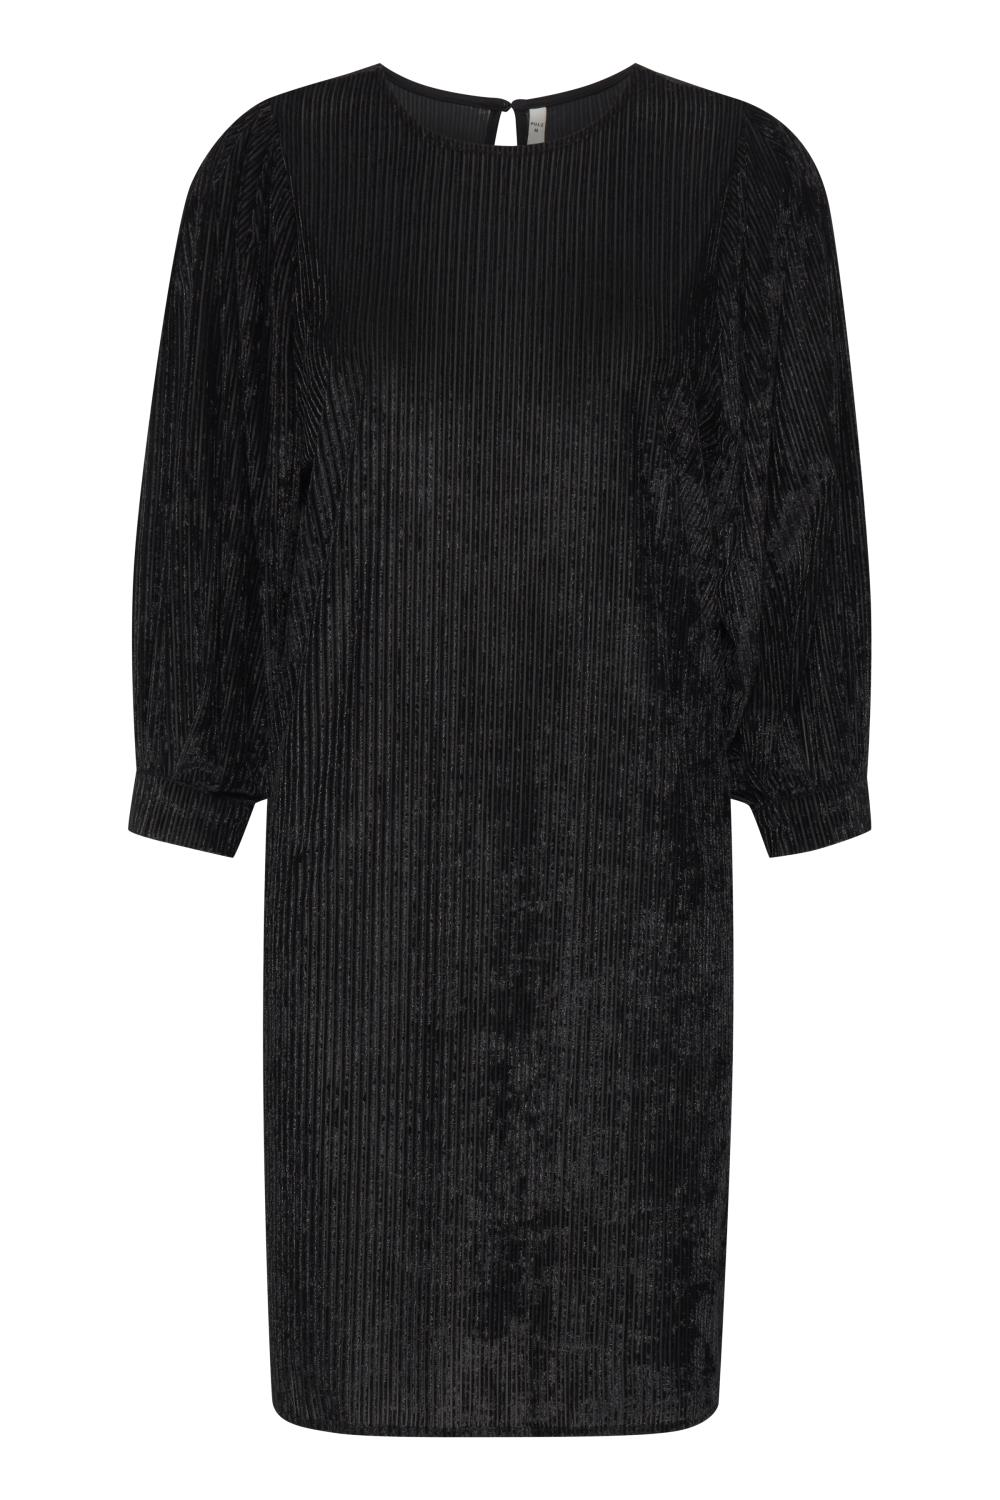 Pulz Livia dress, black beauty